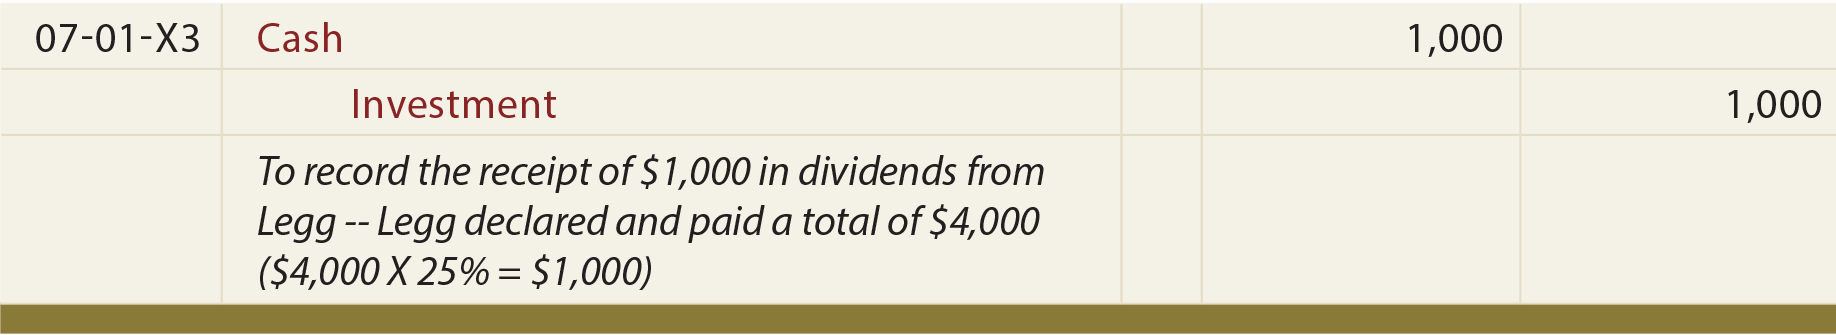 Dividend Journal entry